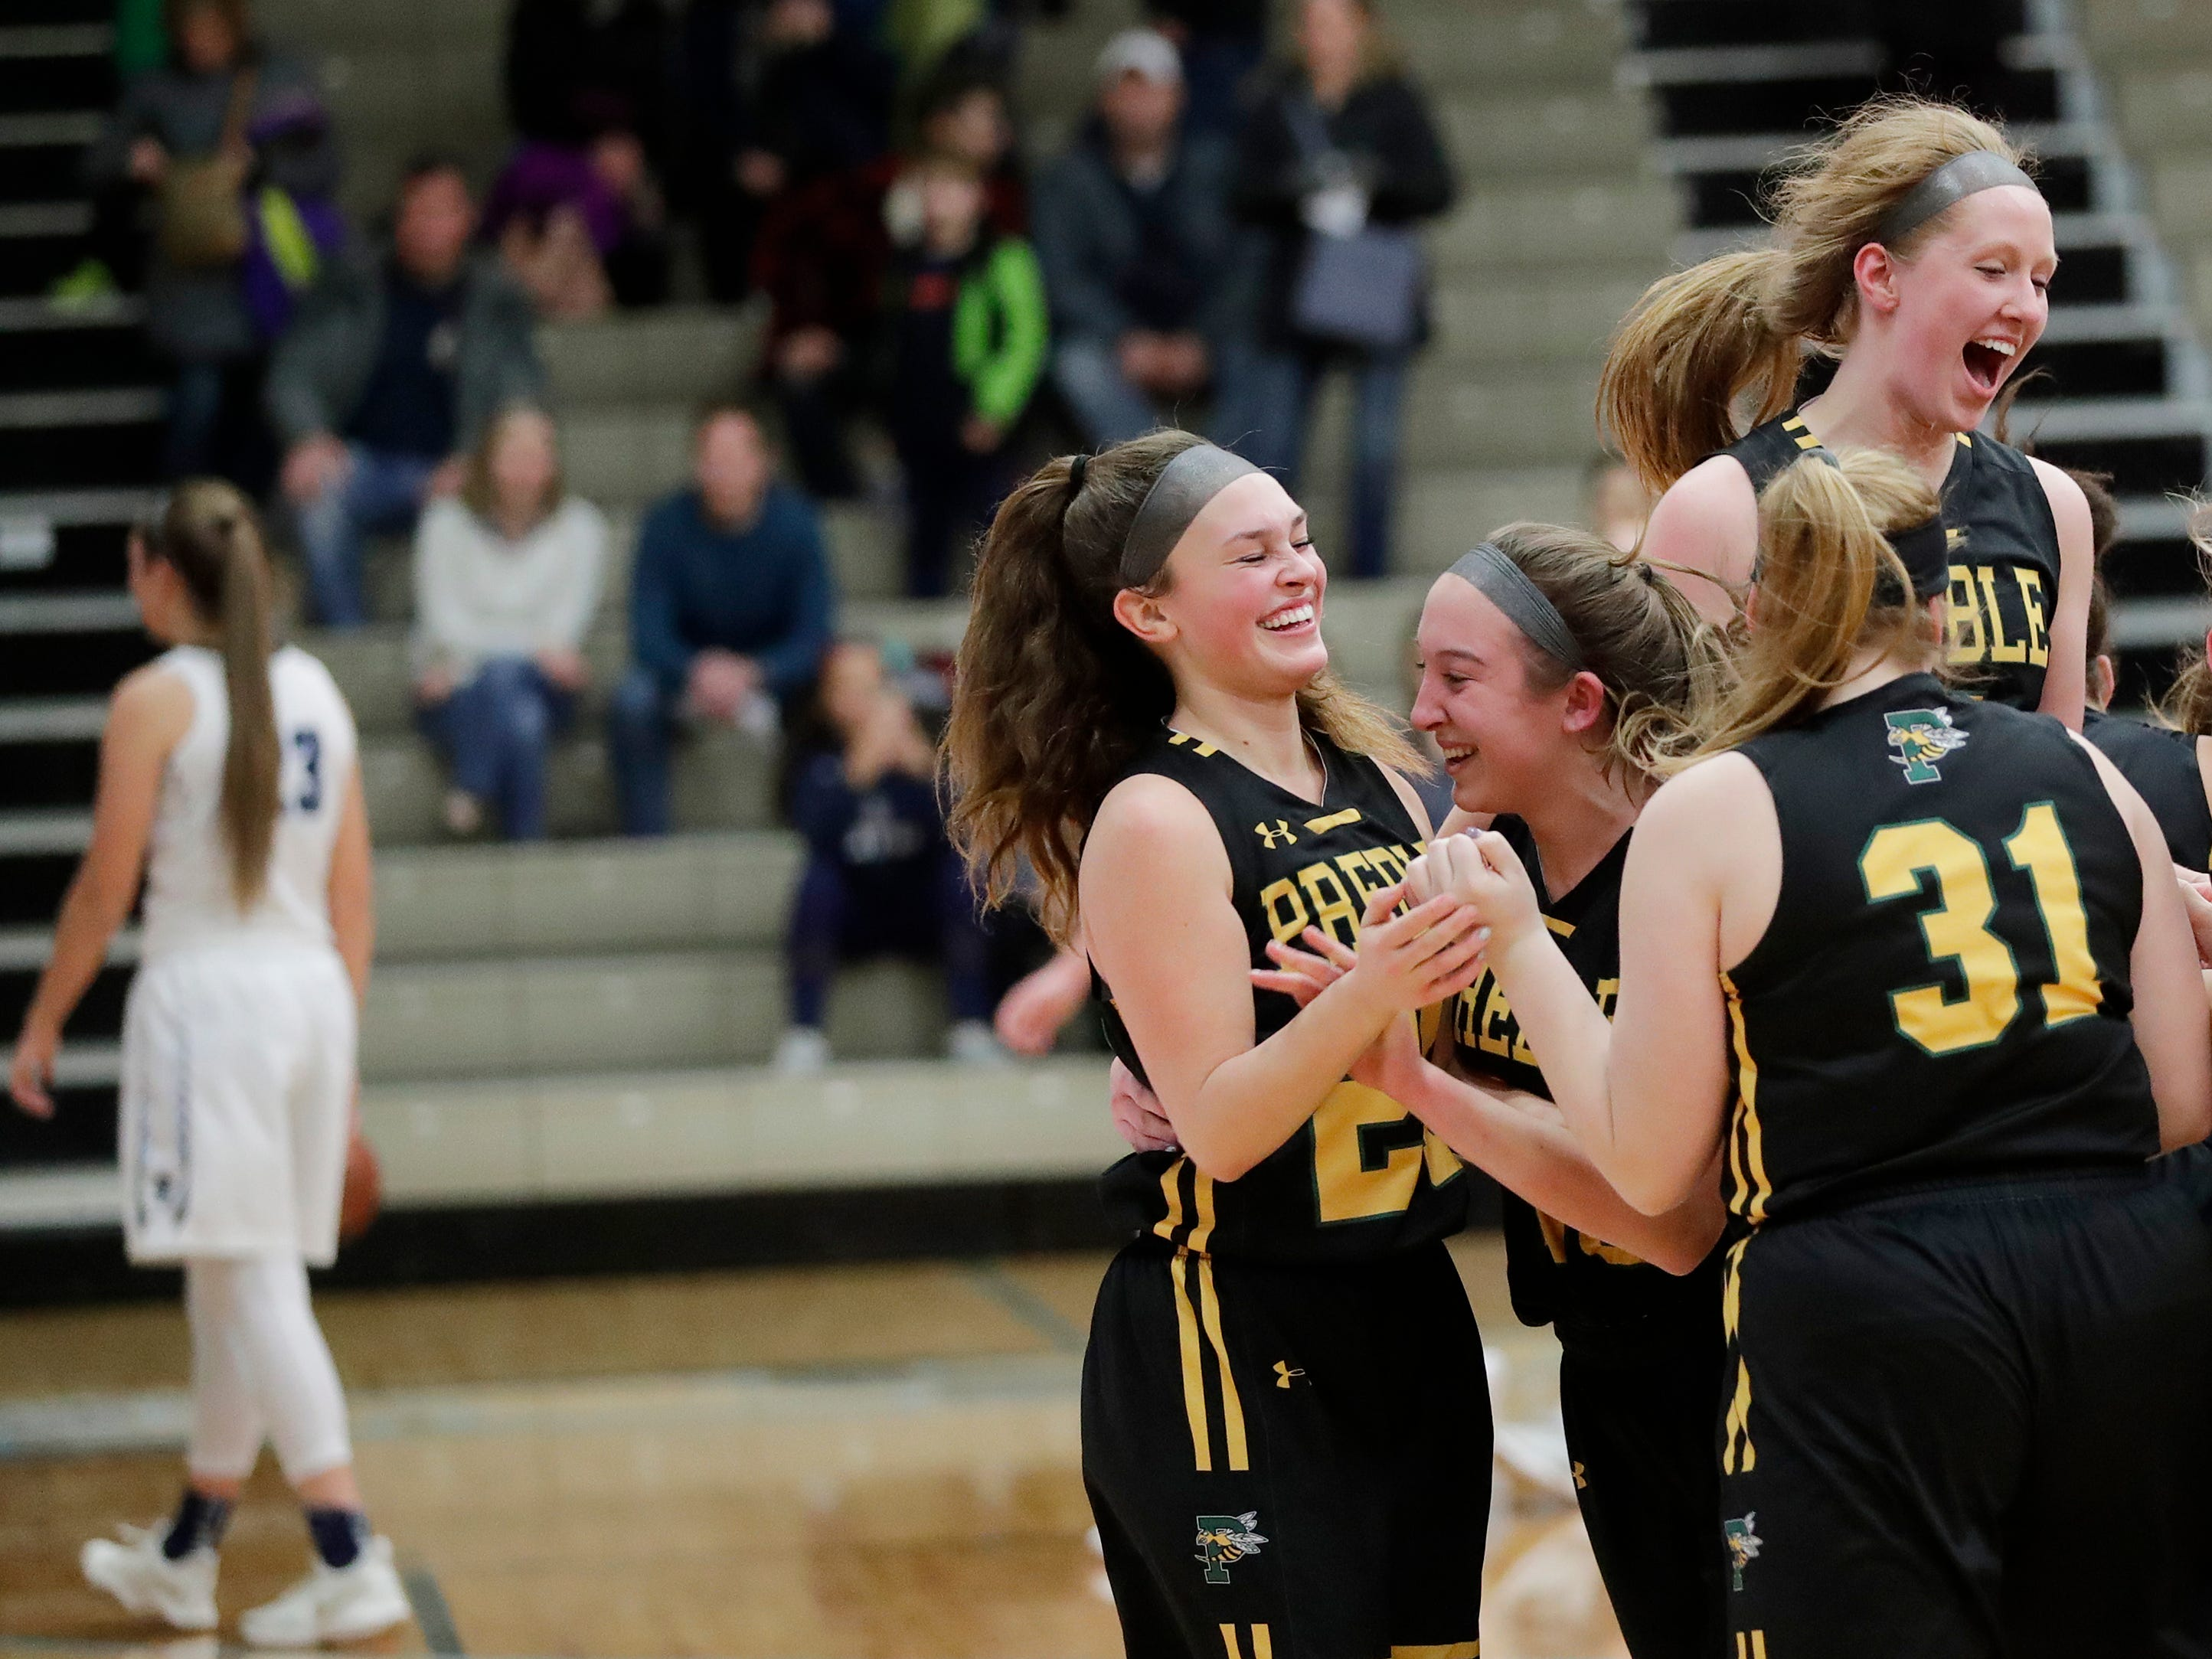 Green Bay Preble players celebrate after defeating Bay Port 61-53 in an FRCC girls basketball game at Bay Port high school on Friday, February 8, 2019 in Suamico, Wis.